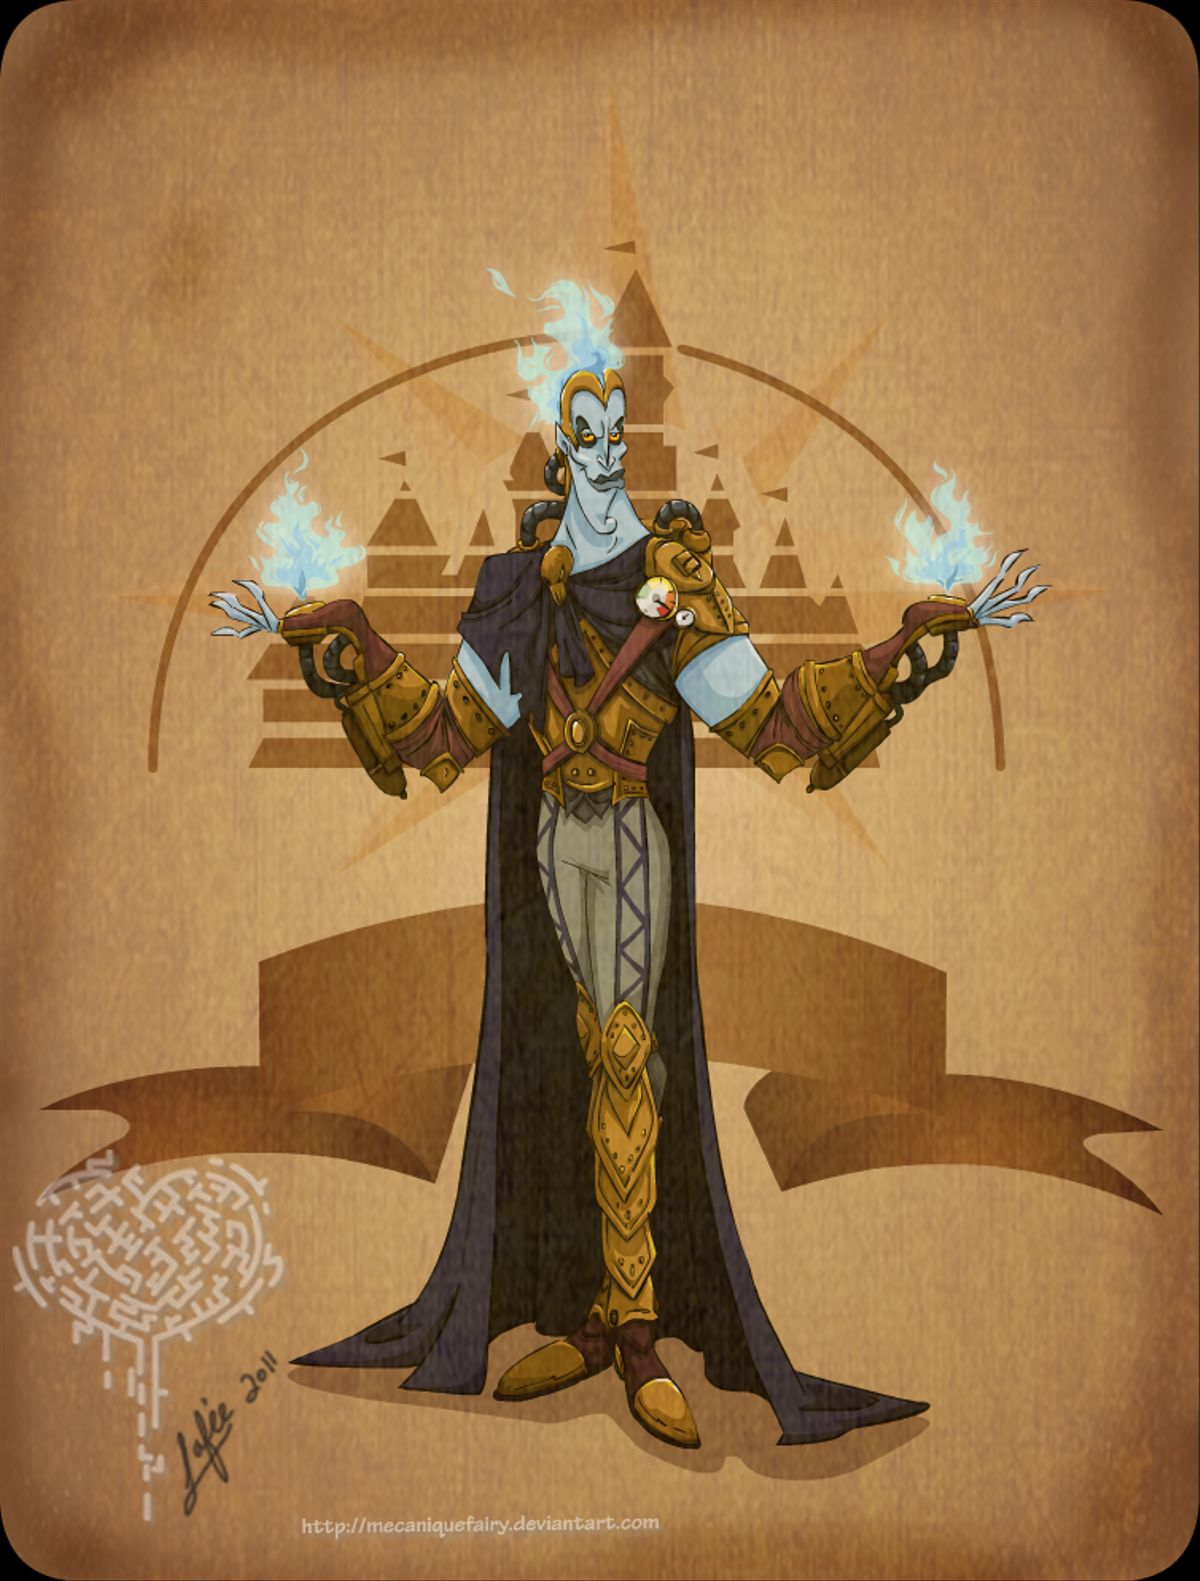 disney_steampunk__hades_by_mecaniquefairy-d3j15hx